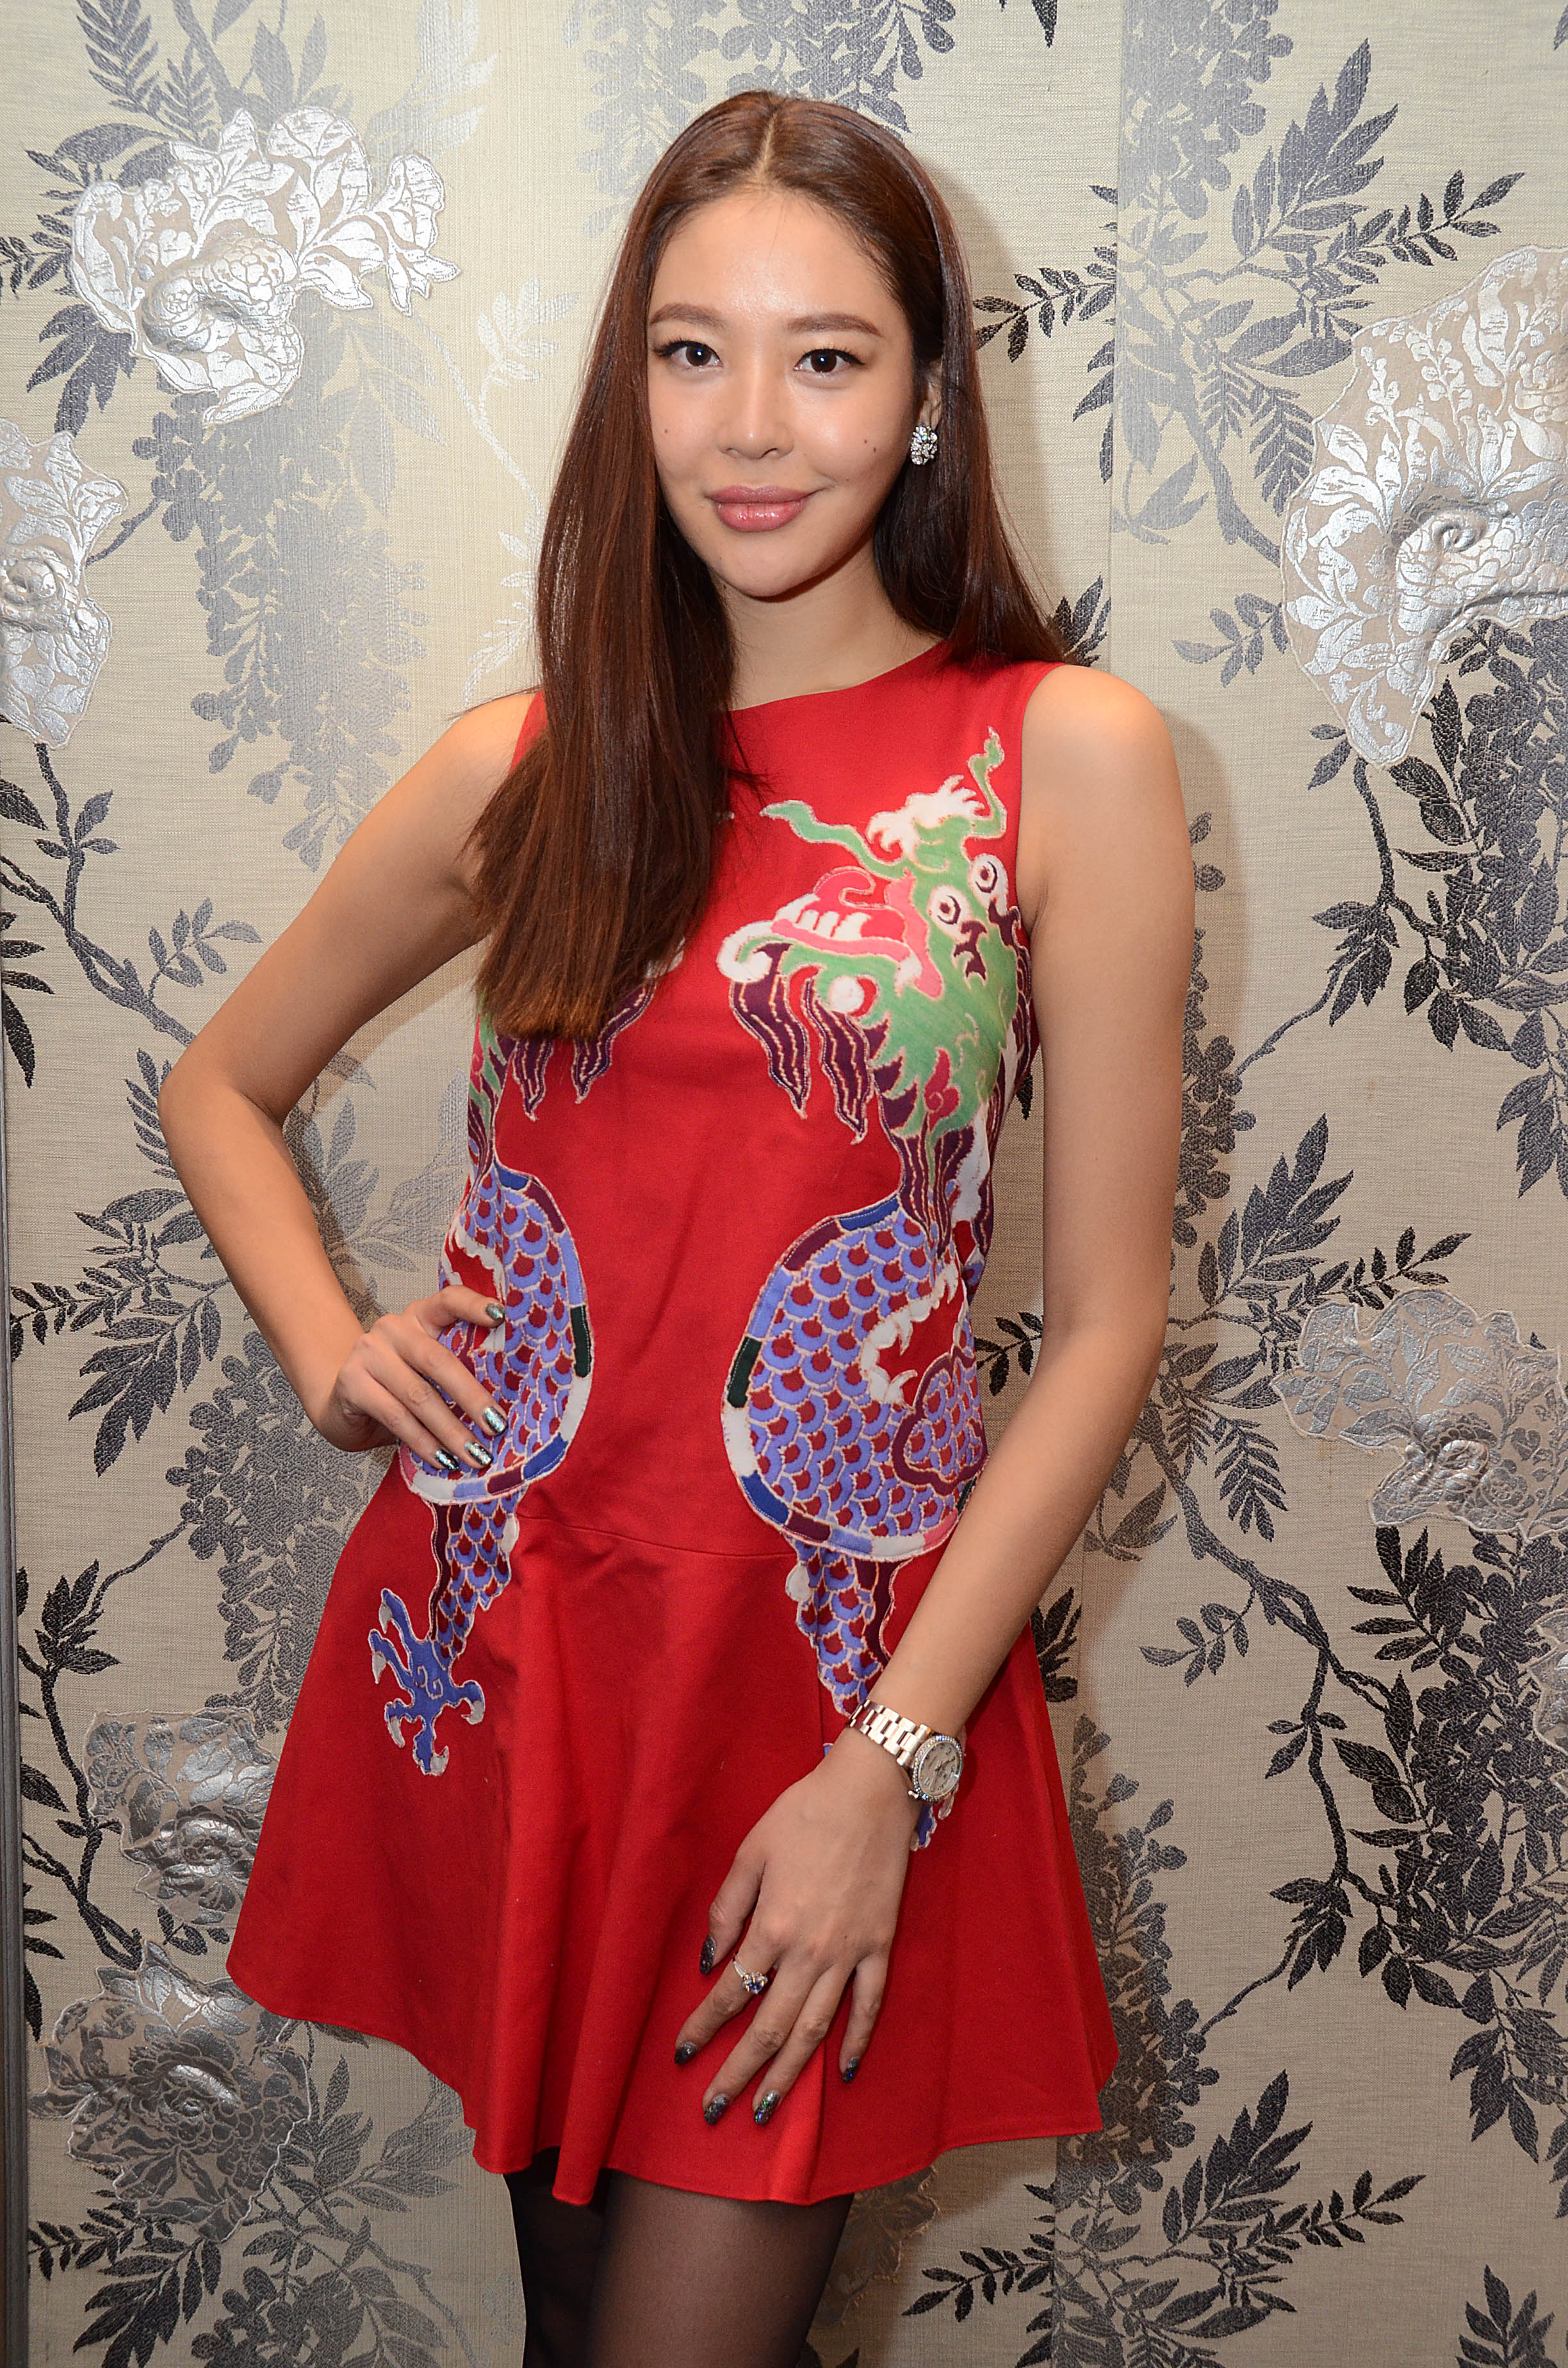 10. Miss China Zilin Luo